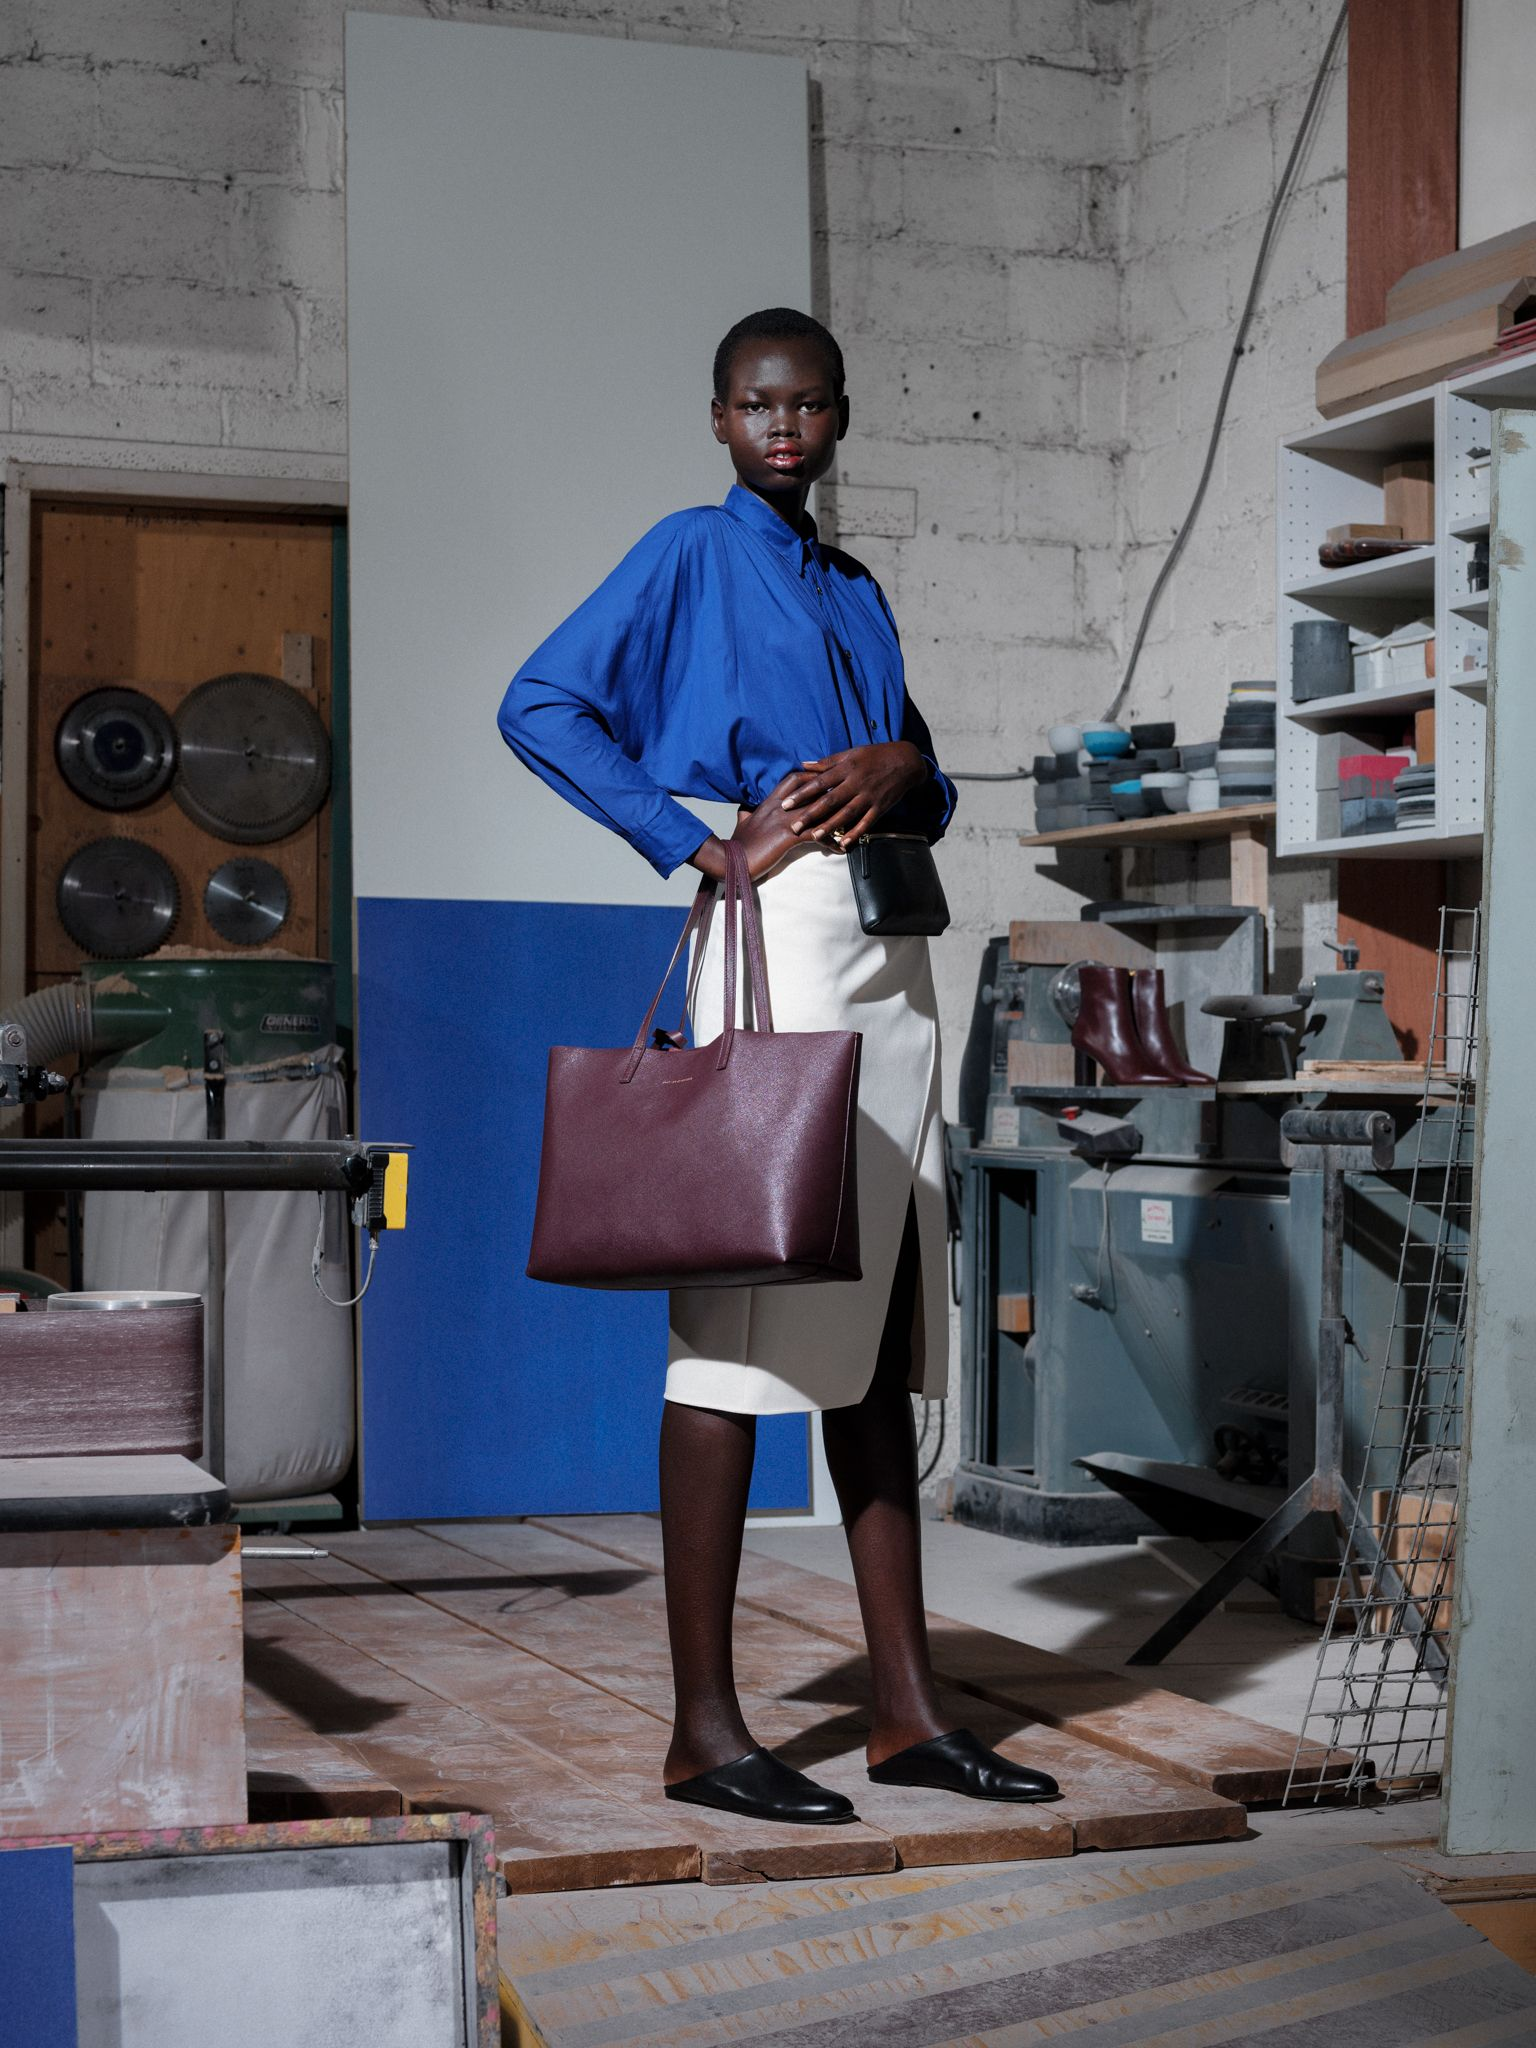 black female model wearing royal blue shirt white skirt and black leather shoes holding dark red purse and black fanny pack photographed by Alexi Hobbs for Want Les Essentiels Pre-Spring Summer 2019 collection